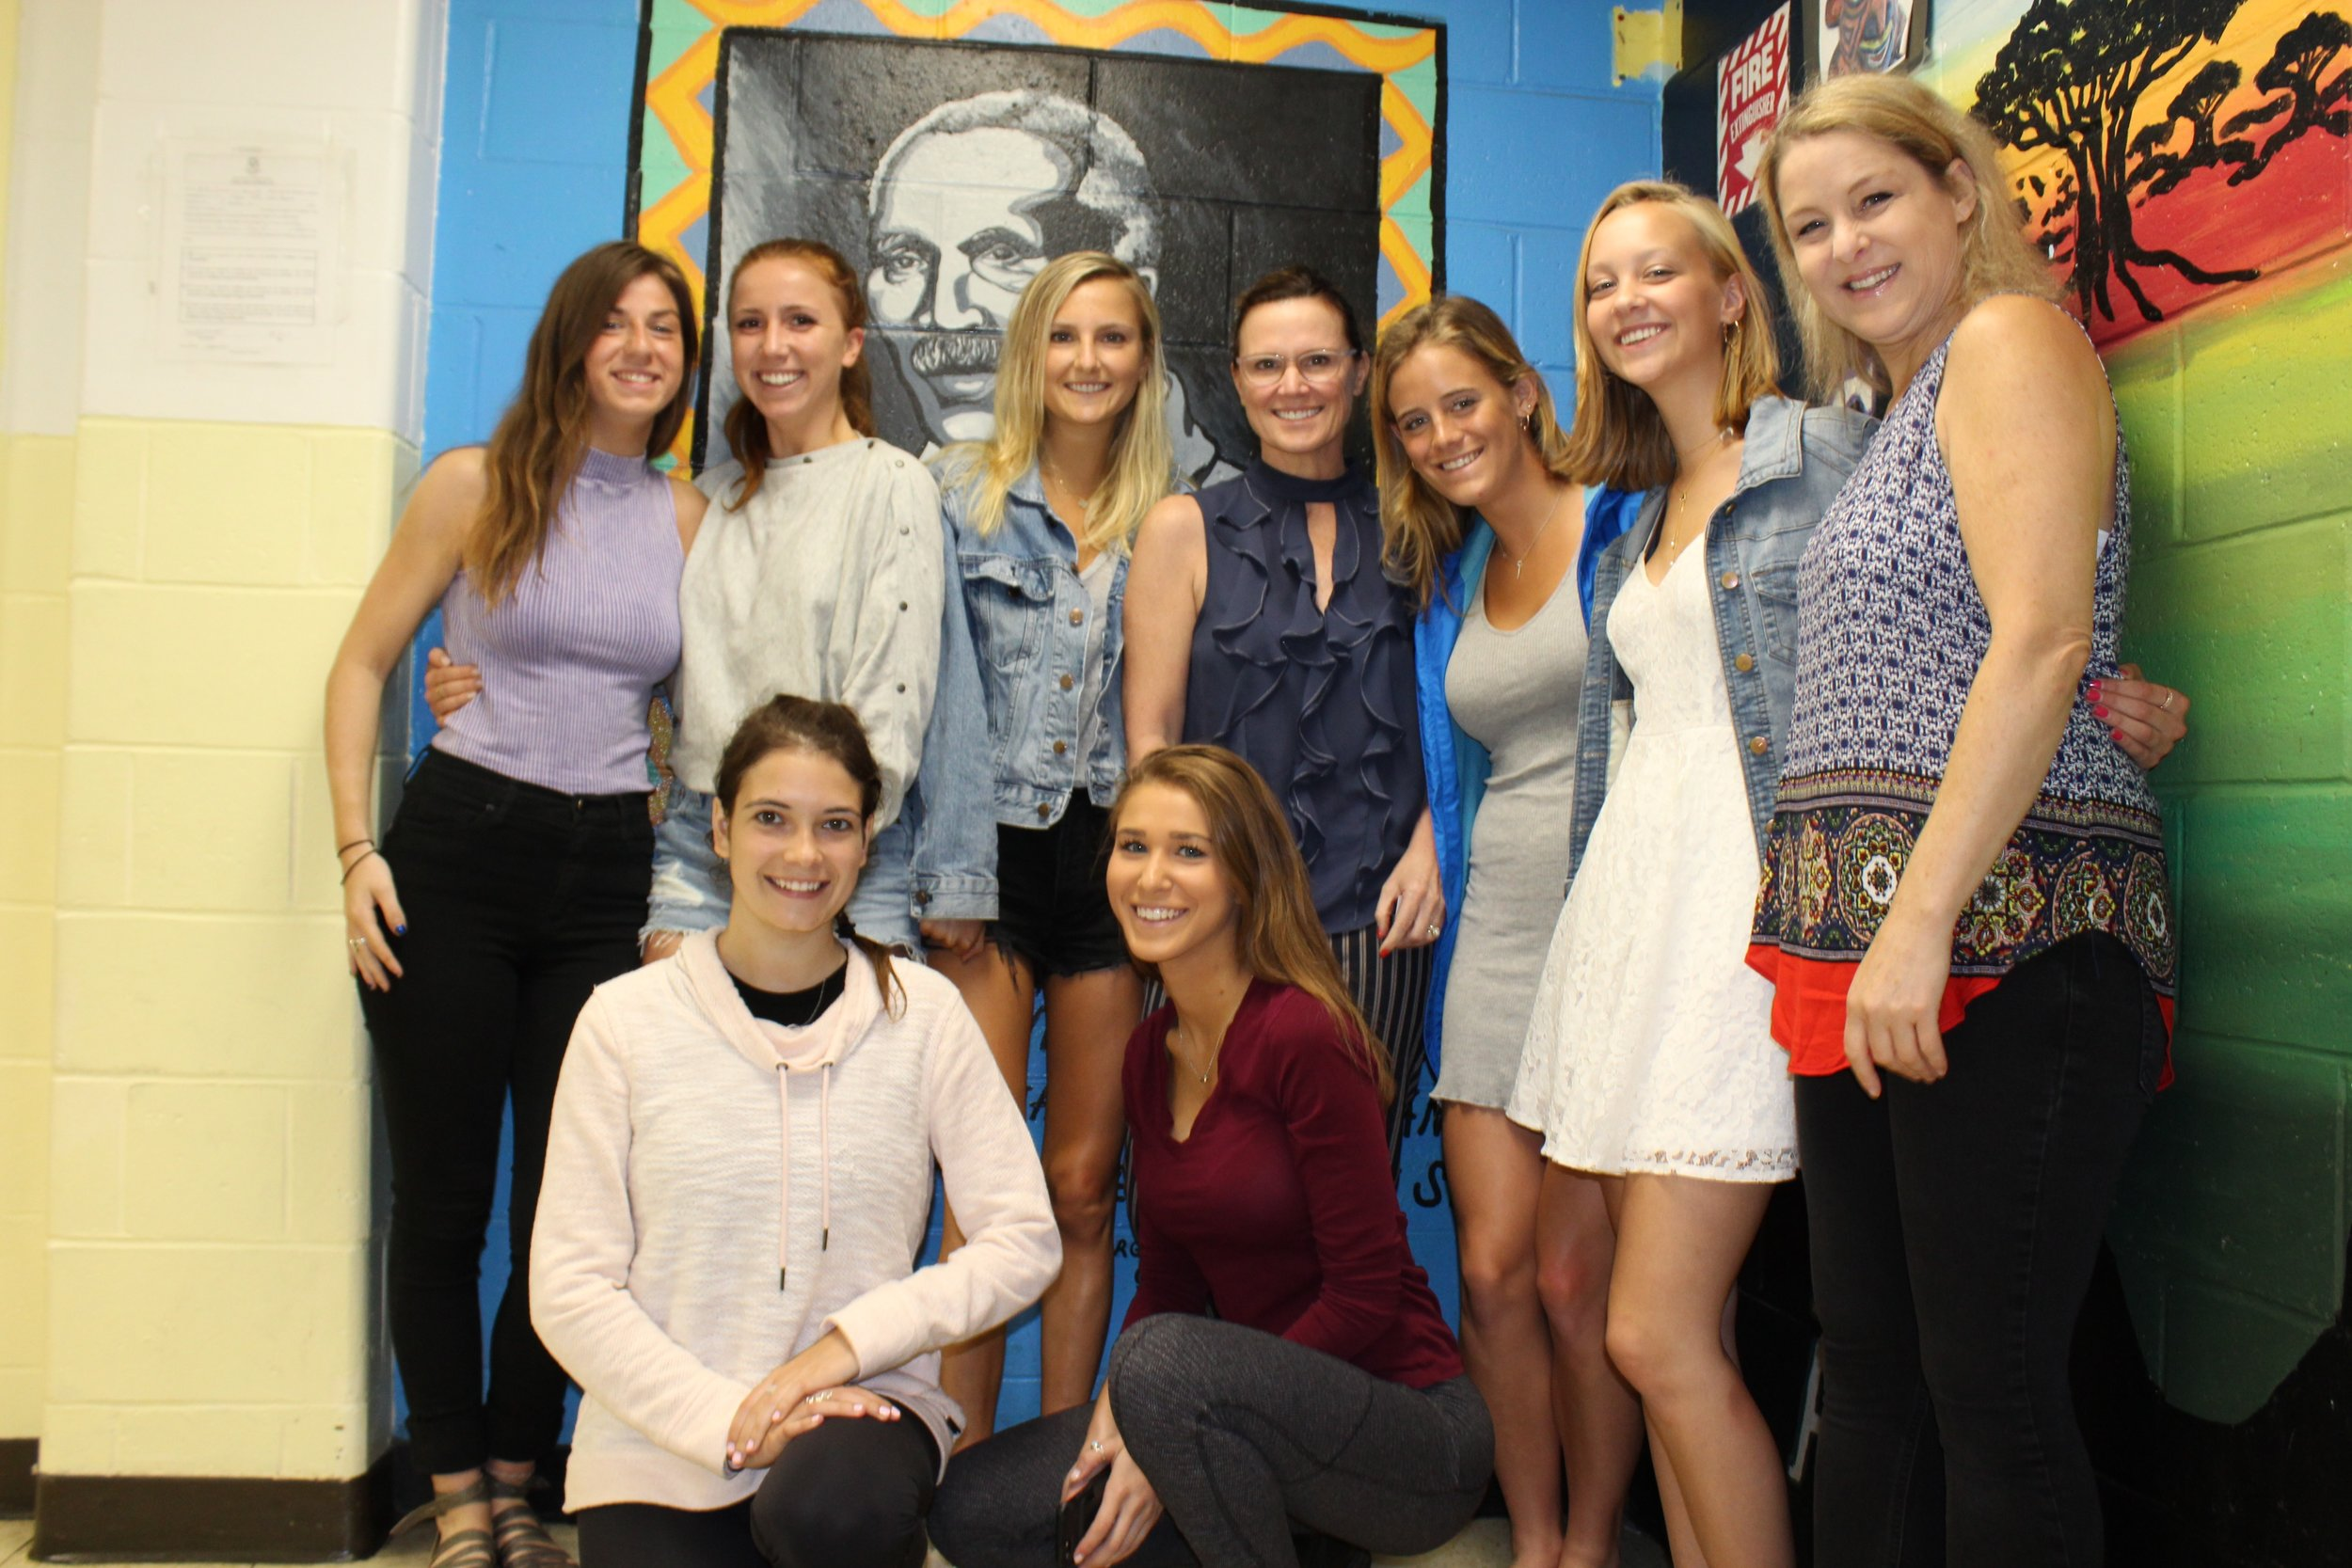 Standing fourth from left,  Miranda Malinowski , Global Head of Recruiting for Facebook, visiting the interns at Carver to share career advice and guidance. Janine Smith is standing first right.